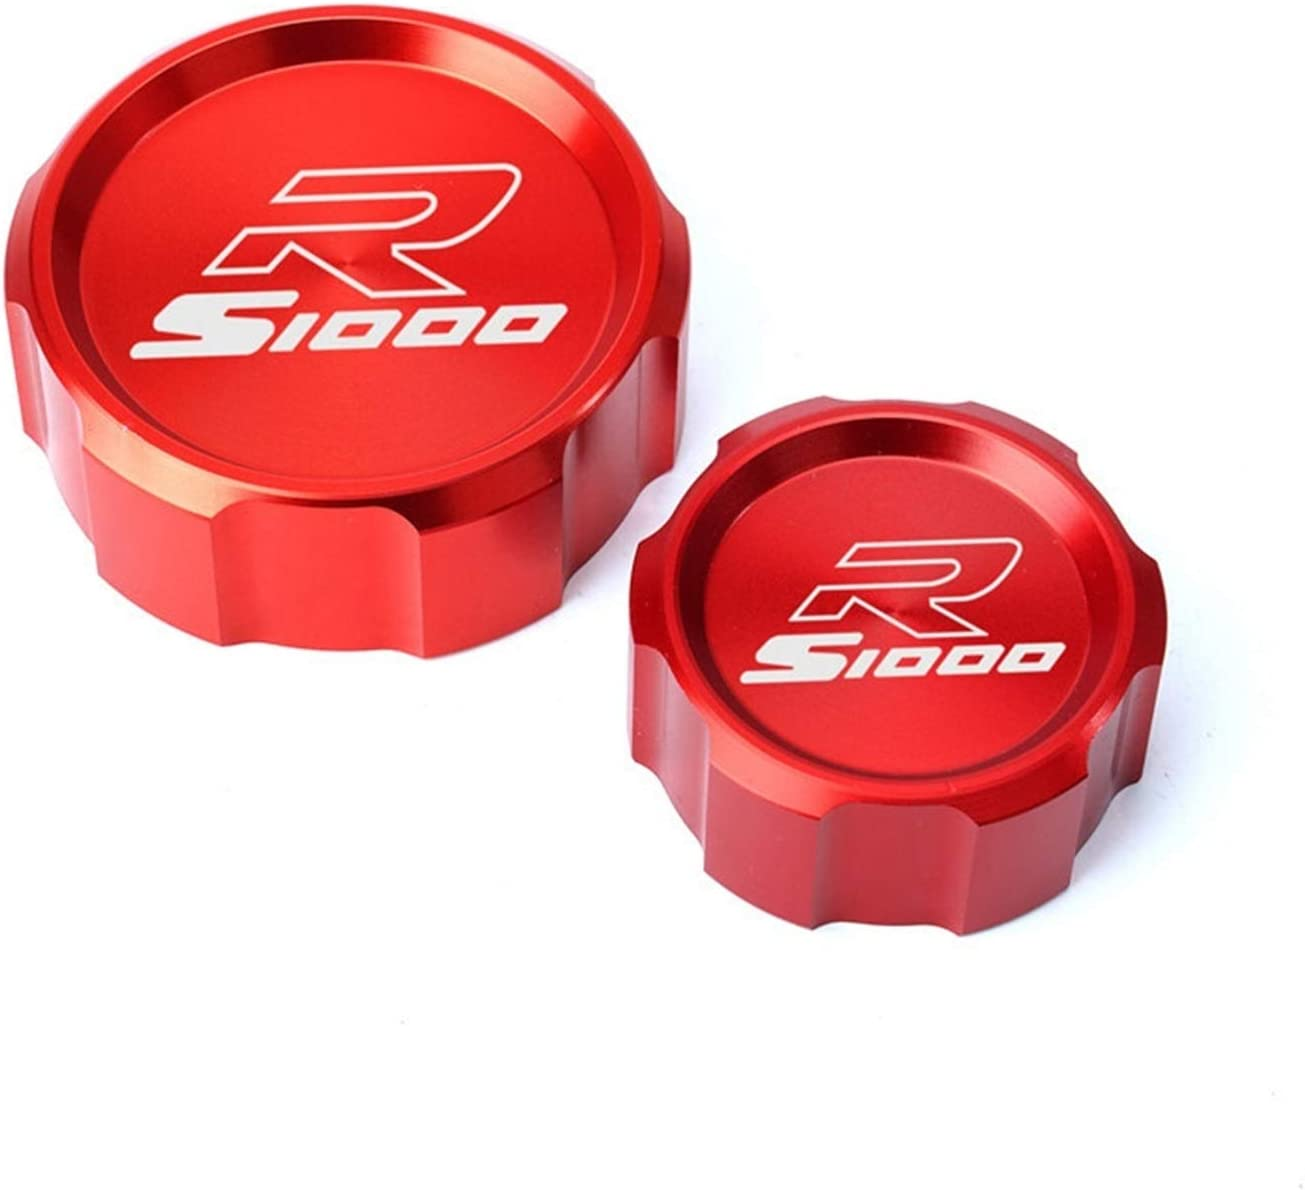 Limited time trial price GSZU Motorcycle Parts Fit for - S S1000 Al sold out. B-M-W R S1000R